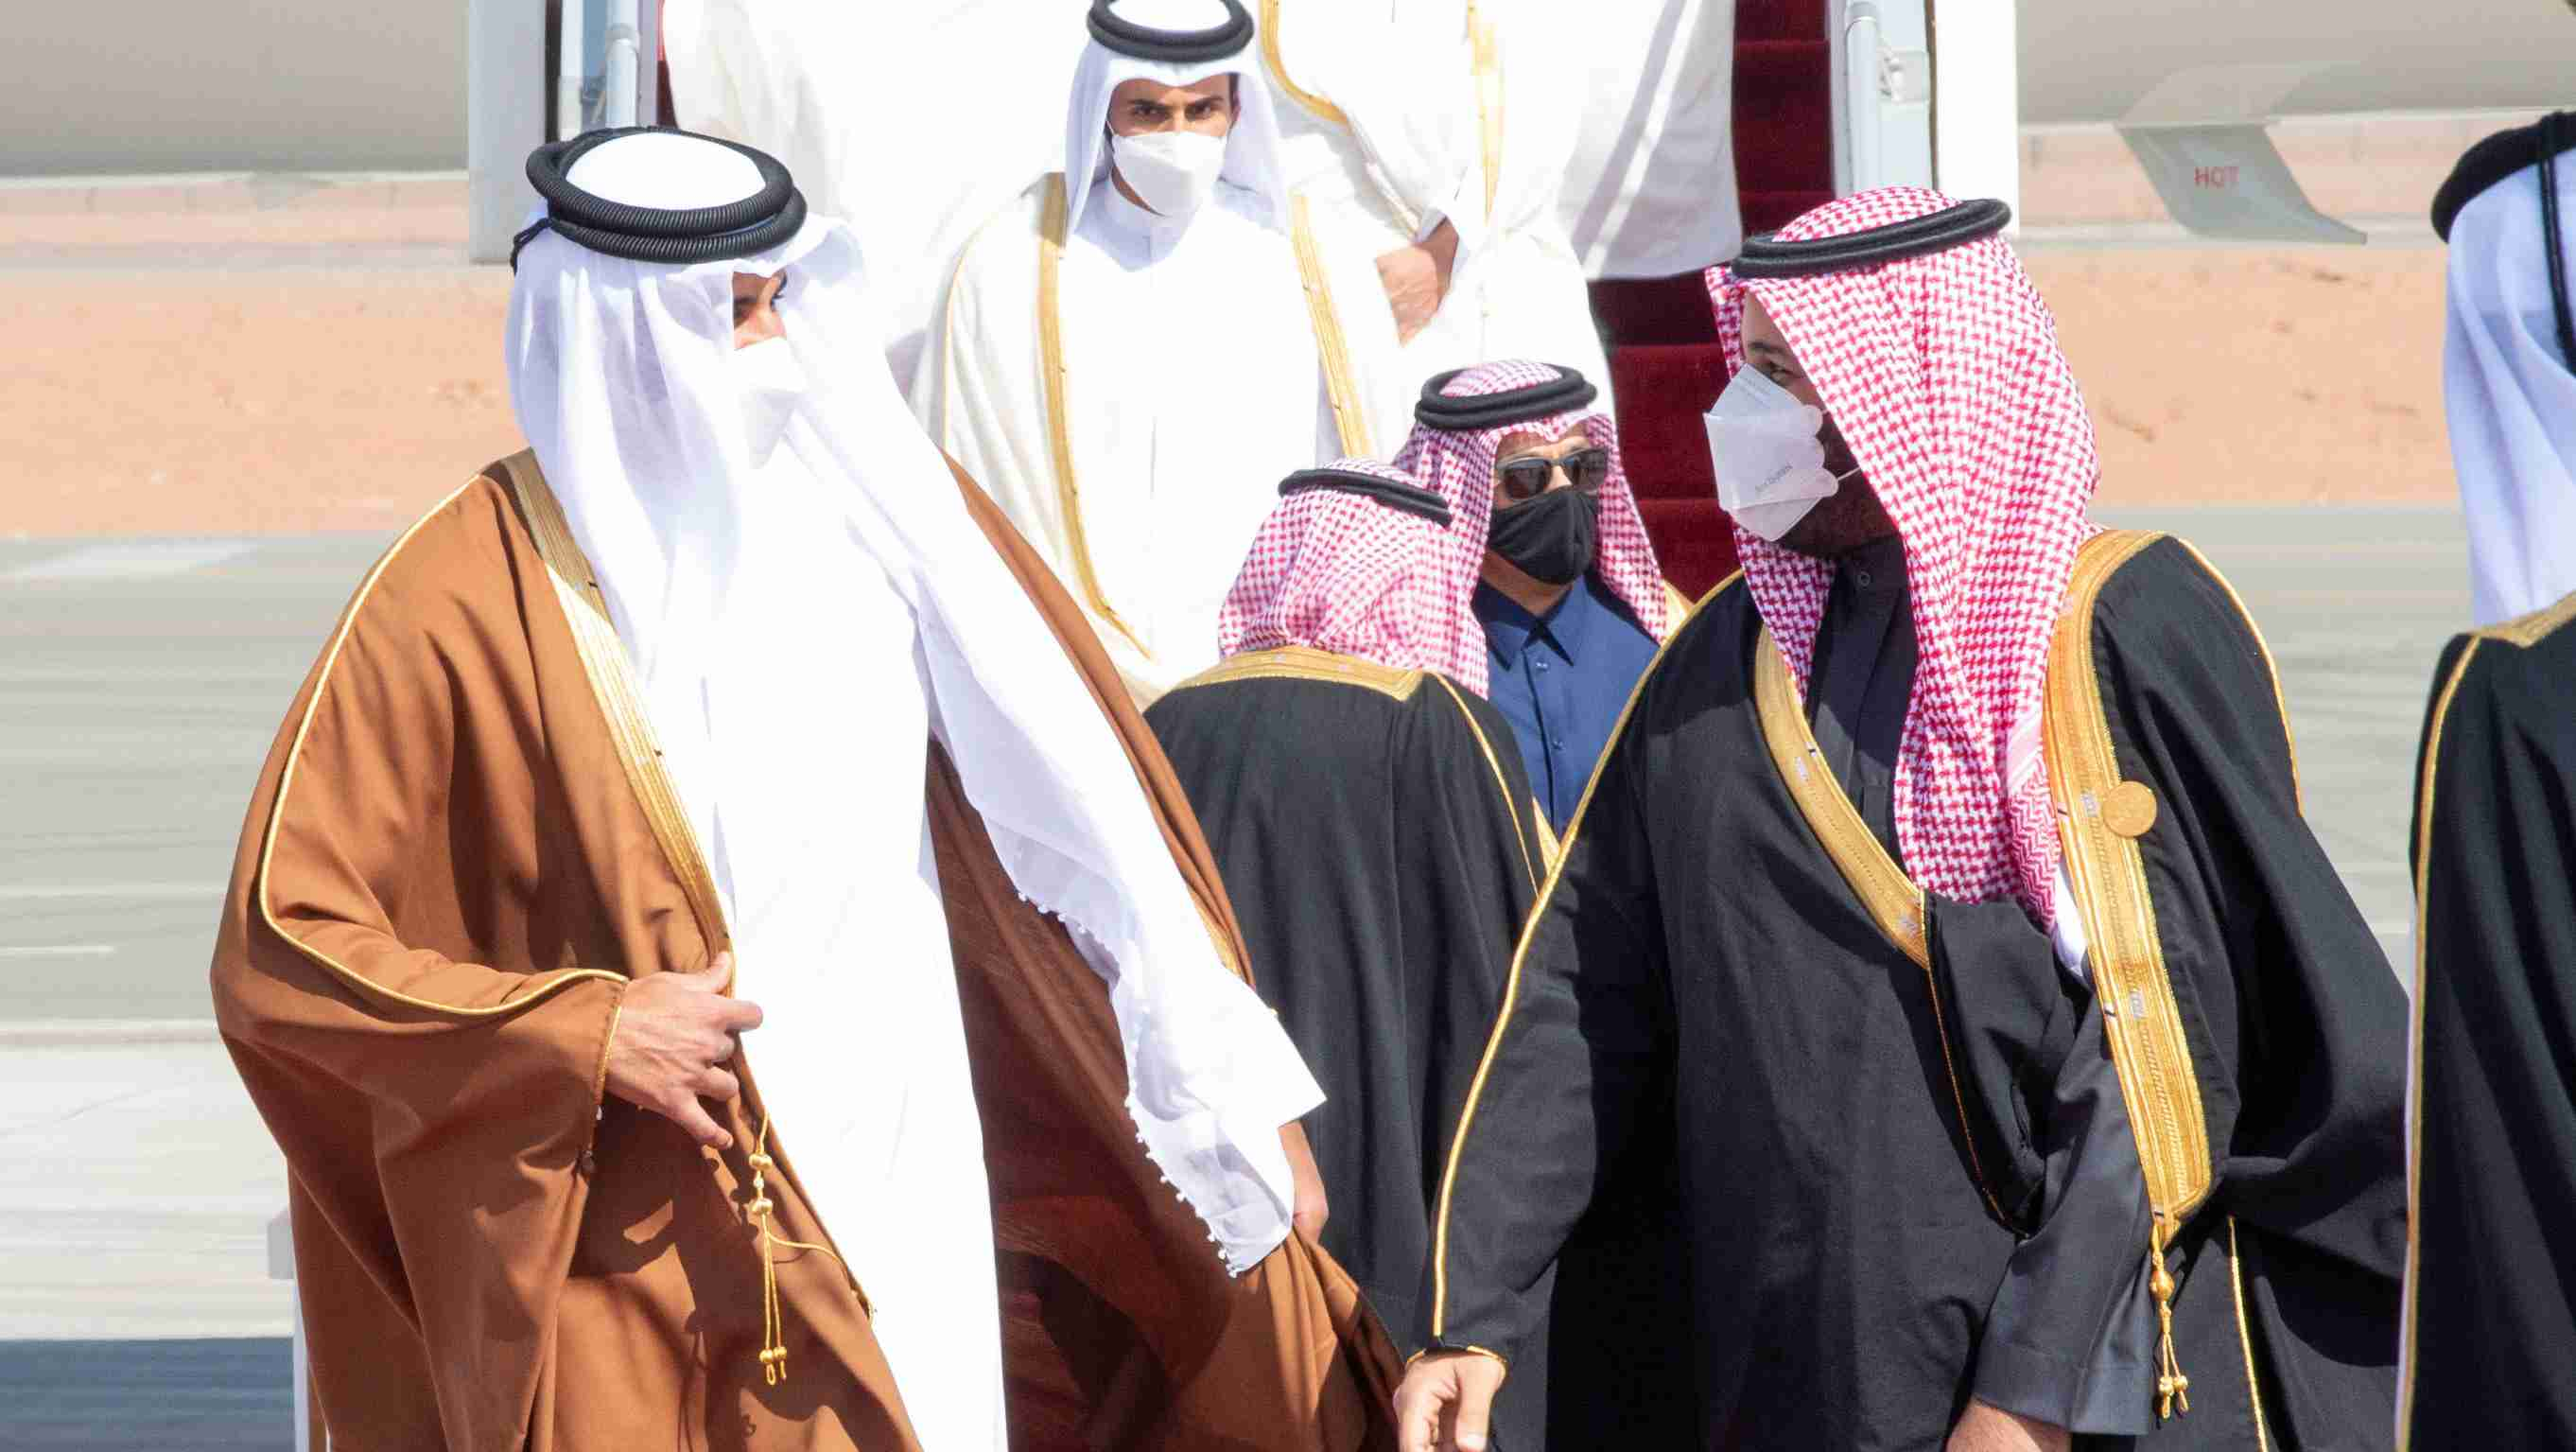 Saudi Arabia's Crown Prince Mohammed bin Salman welcomes Qatar's Emir Sheikh Tamim bin Hamad al-Thani upon his arrival to attend the Gulf Cooperation Council's (GCC) 41st Summit in Al-Ula, Saudi Arabia January 5, 2021. Bandar Algaloud/Courtesy of Saudi Royal Court/Handout via REUTERS ATTENTION EDITORS - THIS PICTURE WAS PROVIDED BY A THIRD PARTY